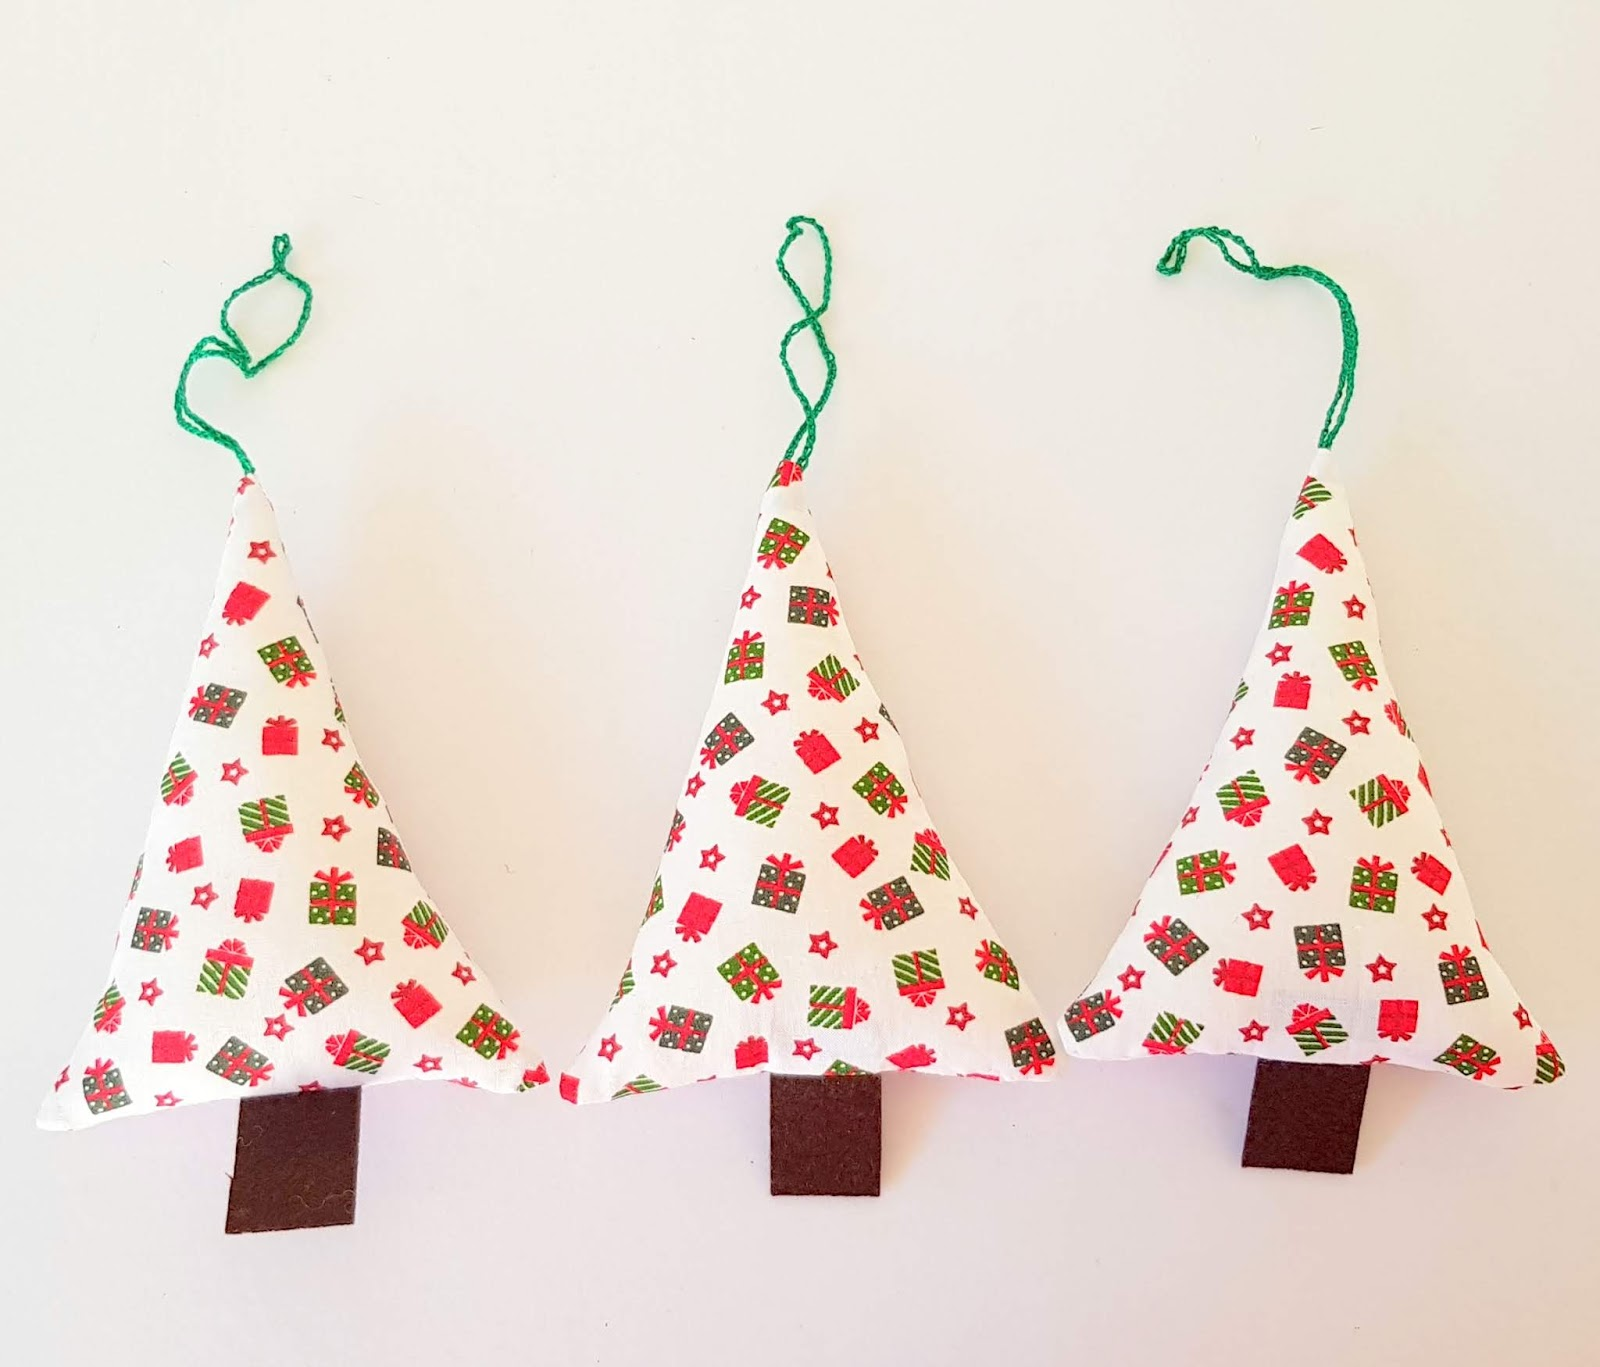 Ema Decorations: Fabric Christmas Tree Ornament - How to make it